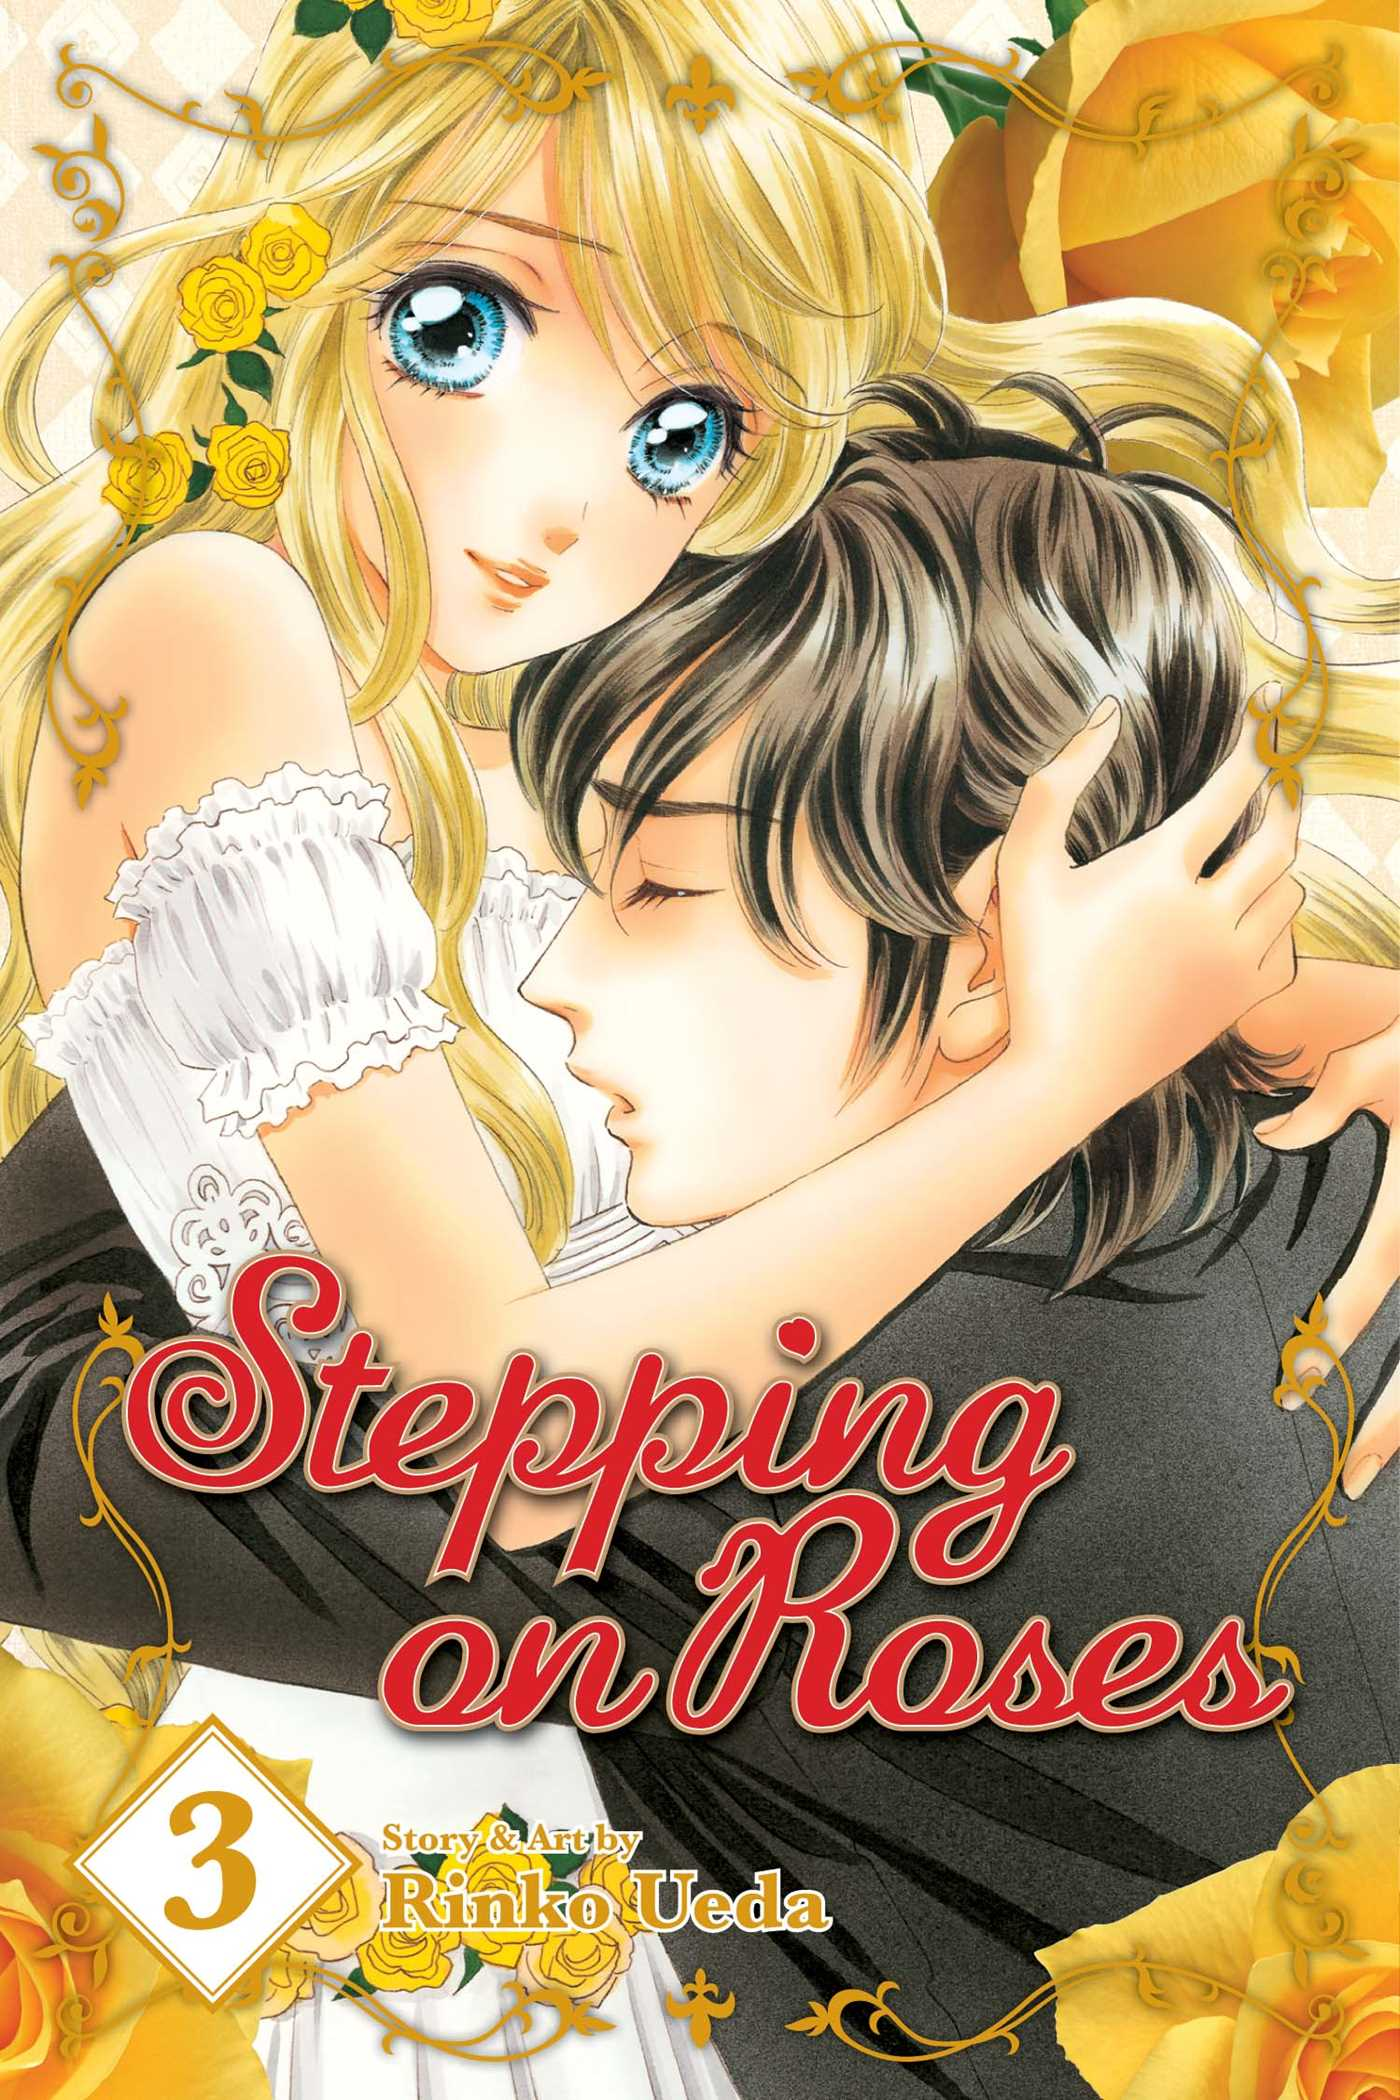 Stepping on roses vol 3 9781421532370 hr